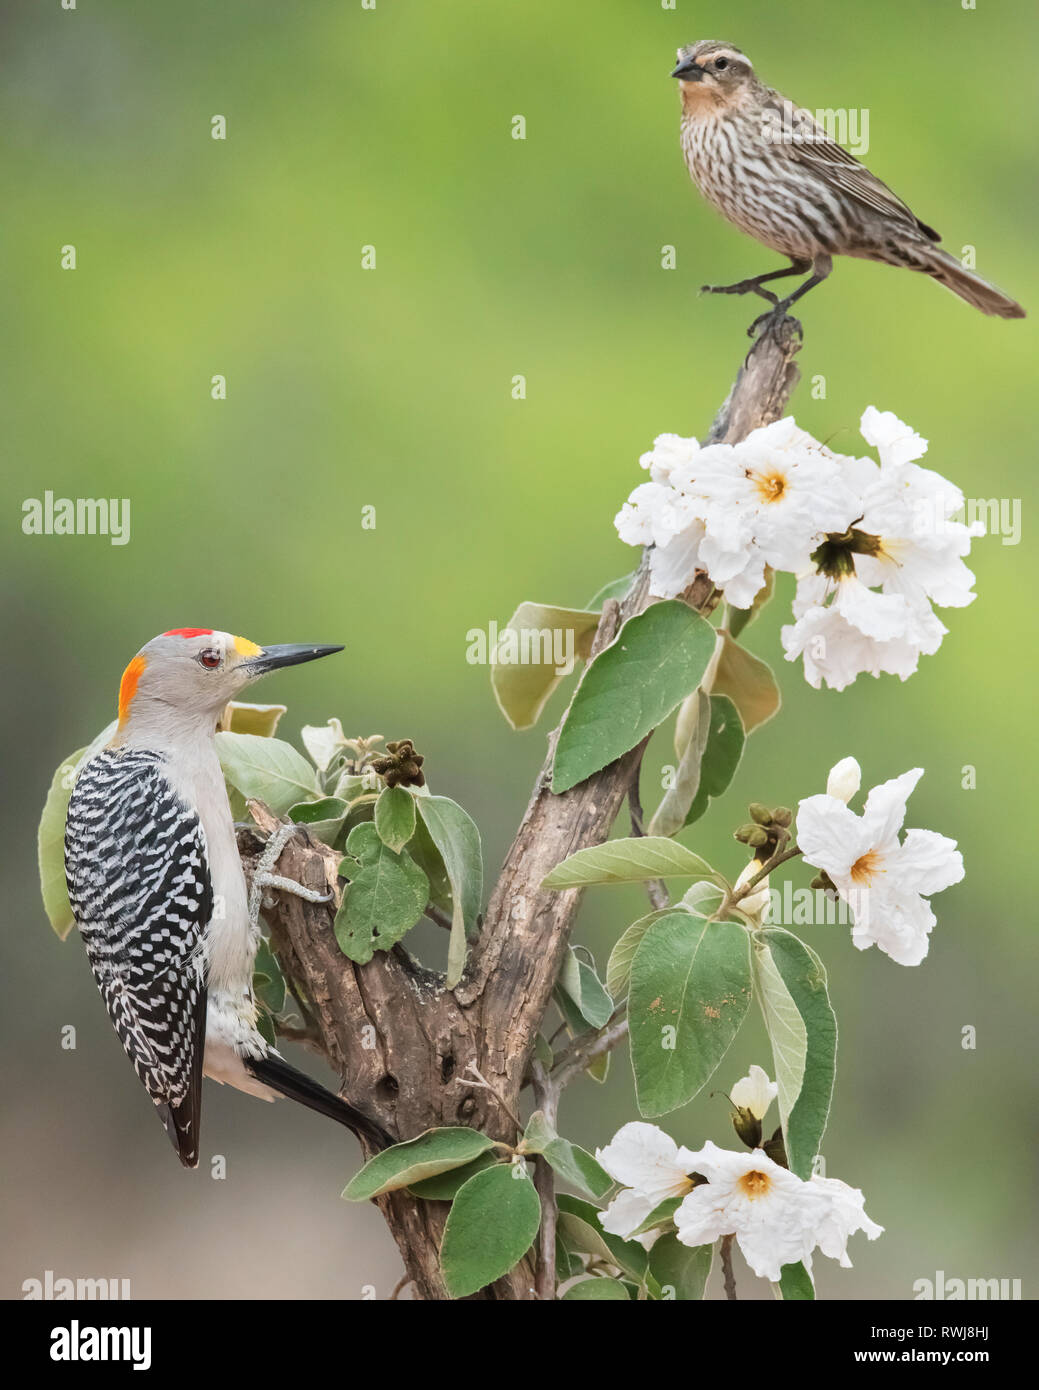 Male Golden-fronted woodpecker (Melanerpes aurifrons) and immature Blackbird on tree with white flowers, Laguna Seca Ranch Stock Photo